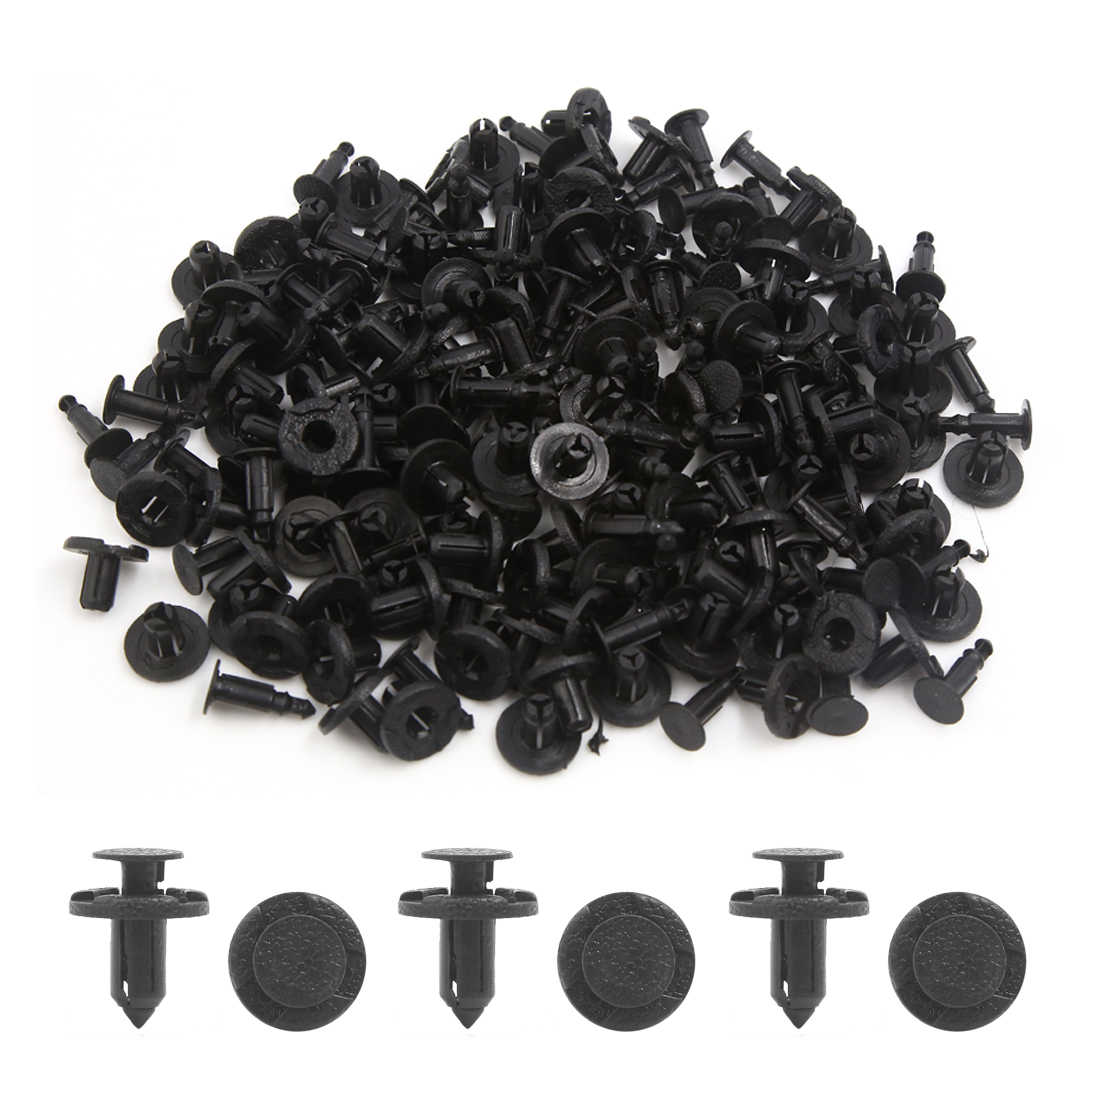 Universal Car Plastic Rivets Push Pin Fastener Fender Retainer Clip Black 100Pcs